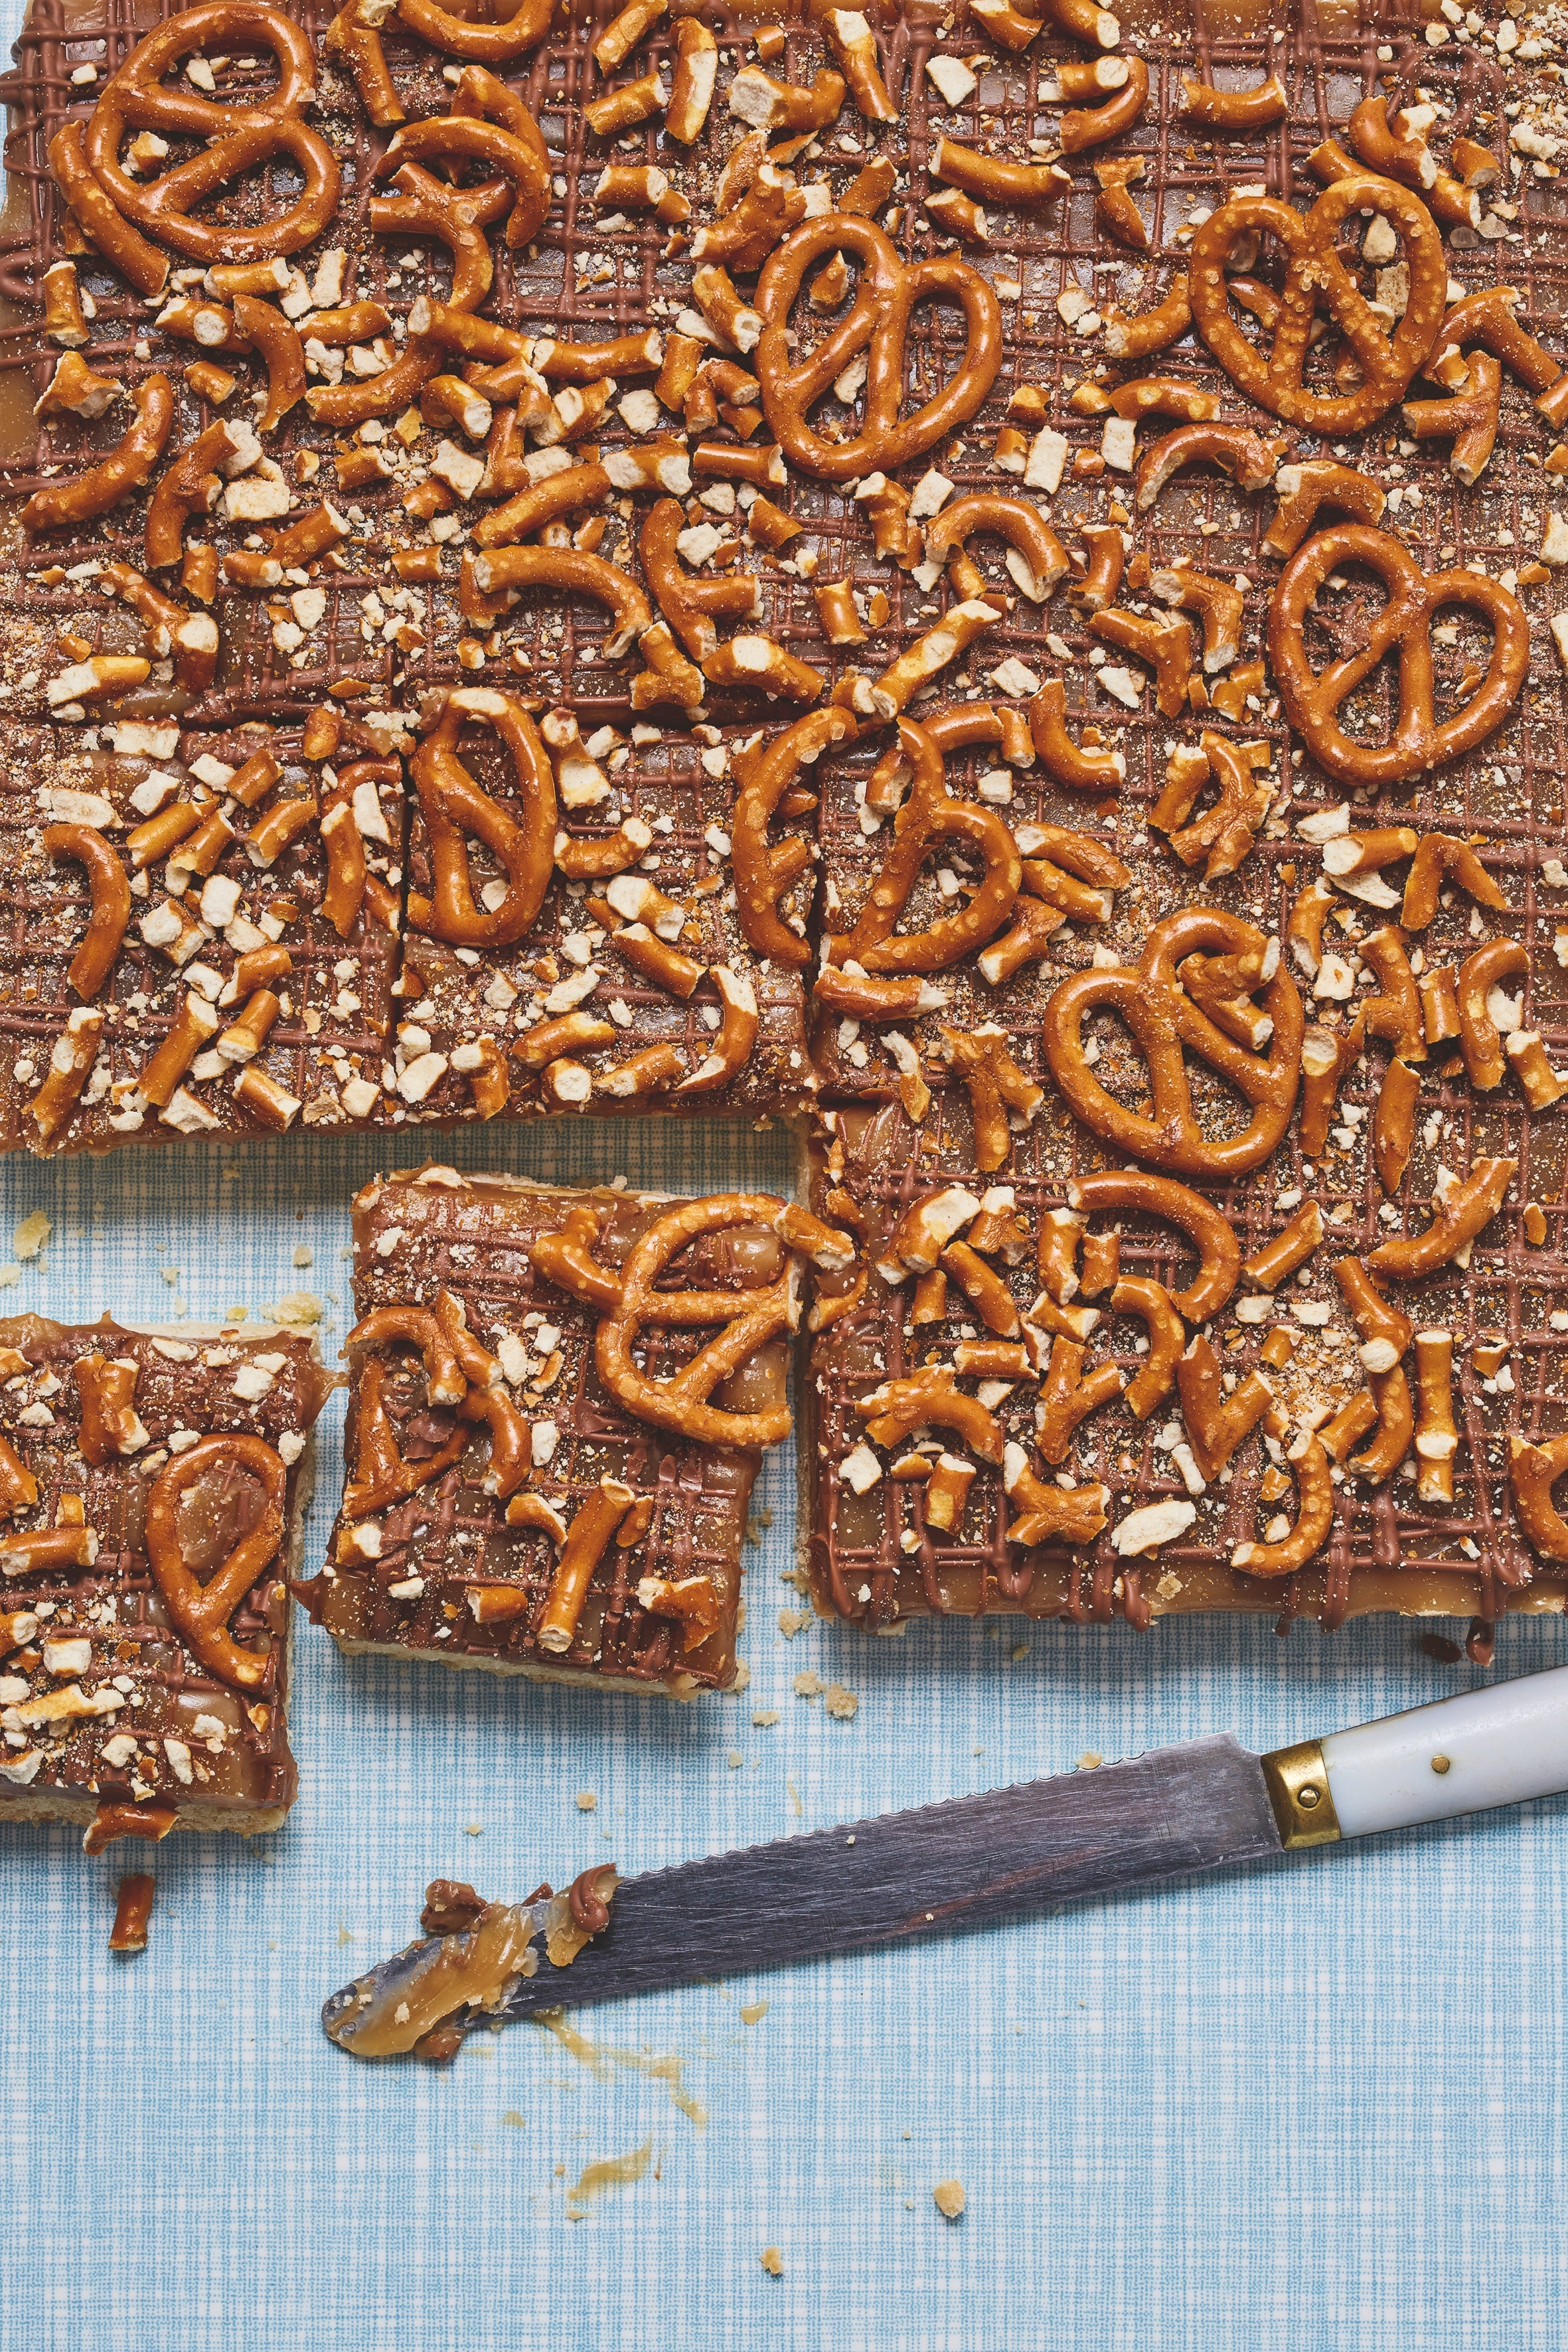 Flat lay of salted caramel pretzel slice with a knife, cuttings into squares